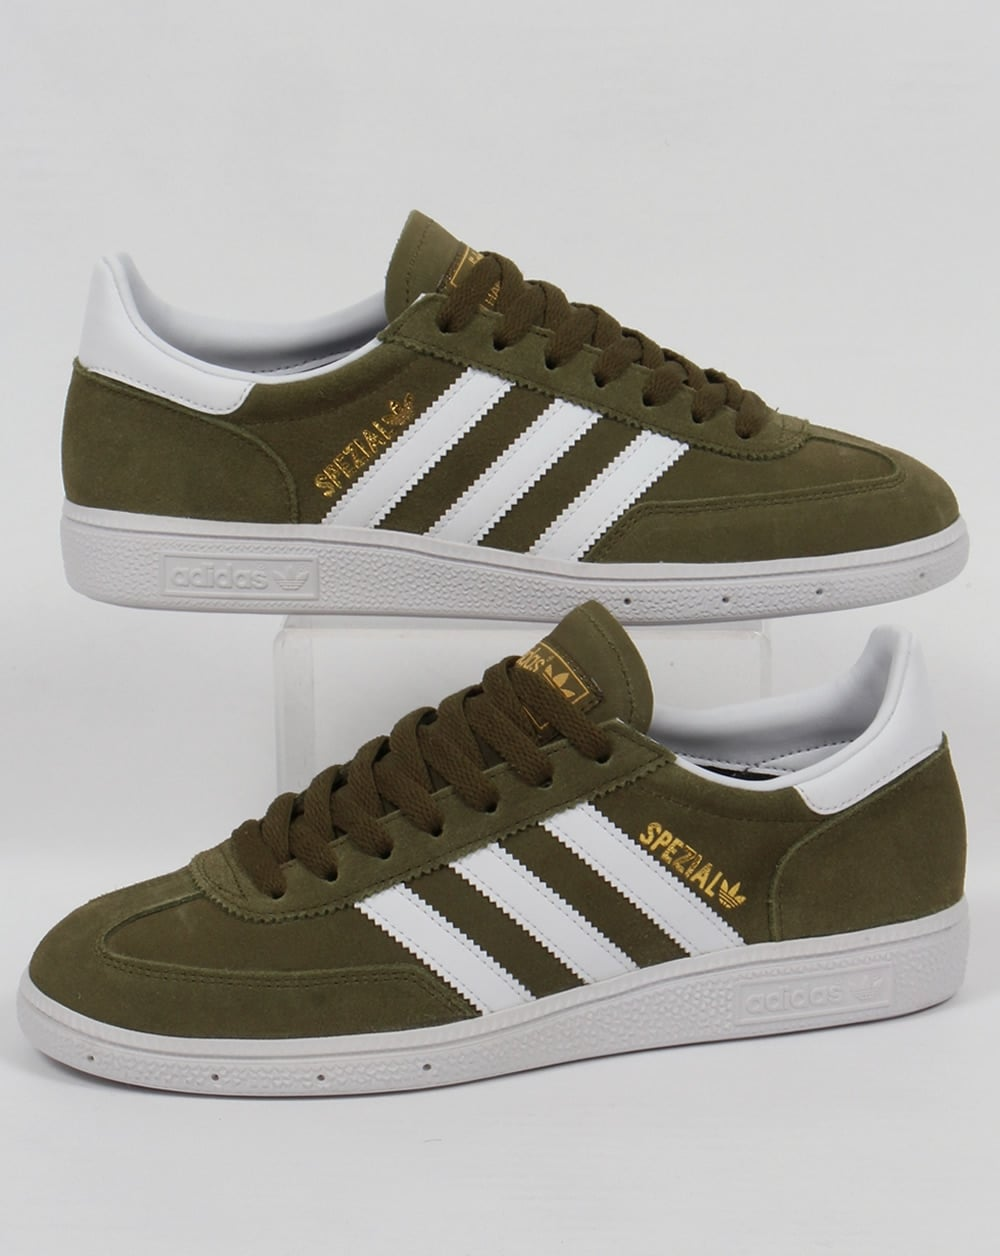 aa0222a8dbf7 adidas Trainers Adidas Spezial Trainers Dust Green white